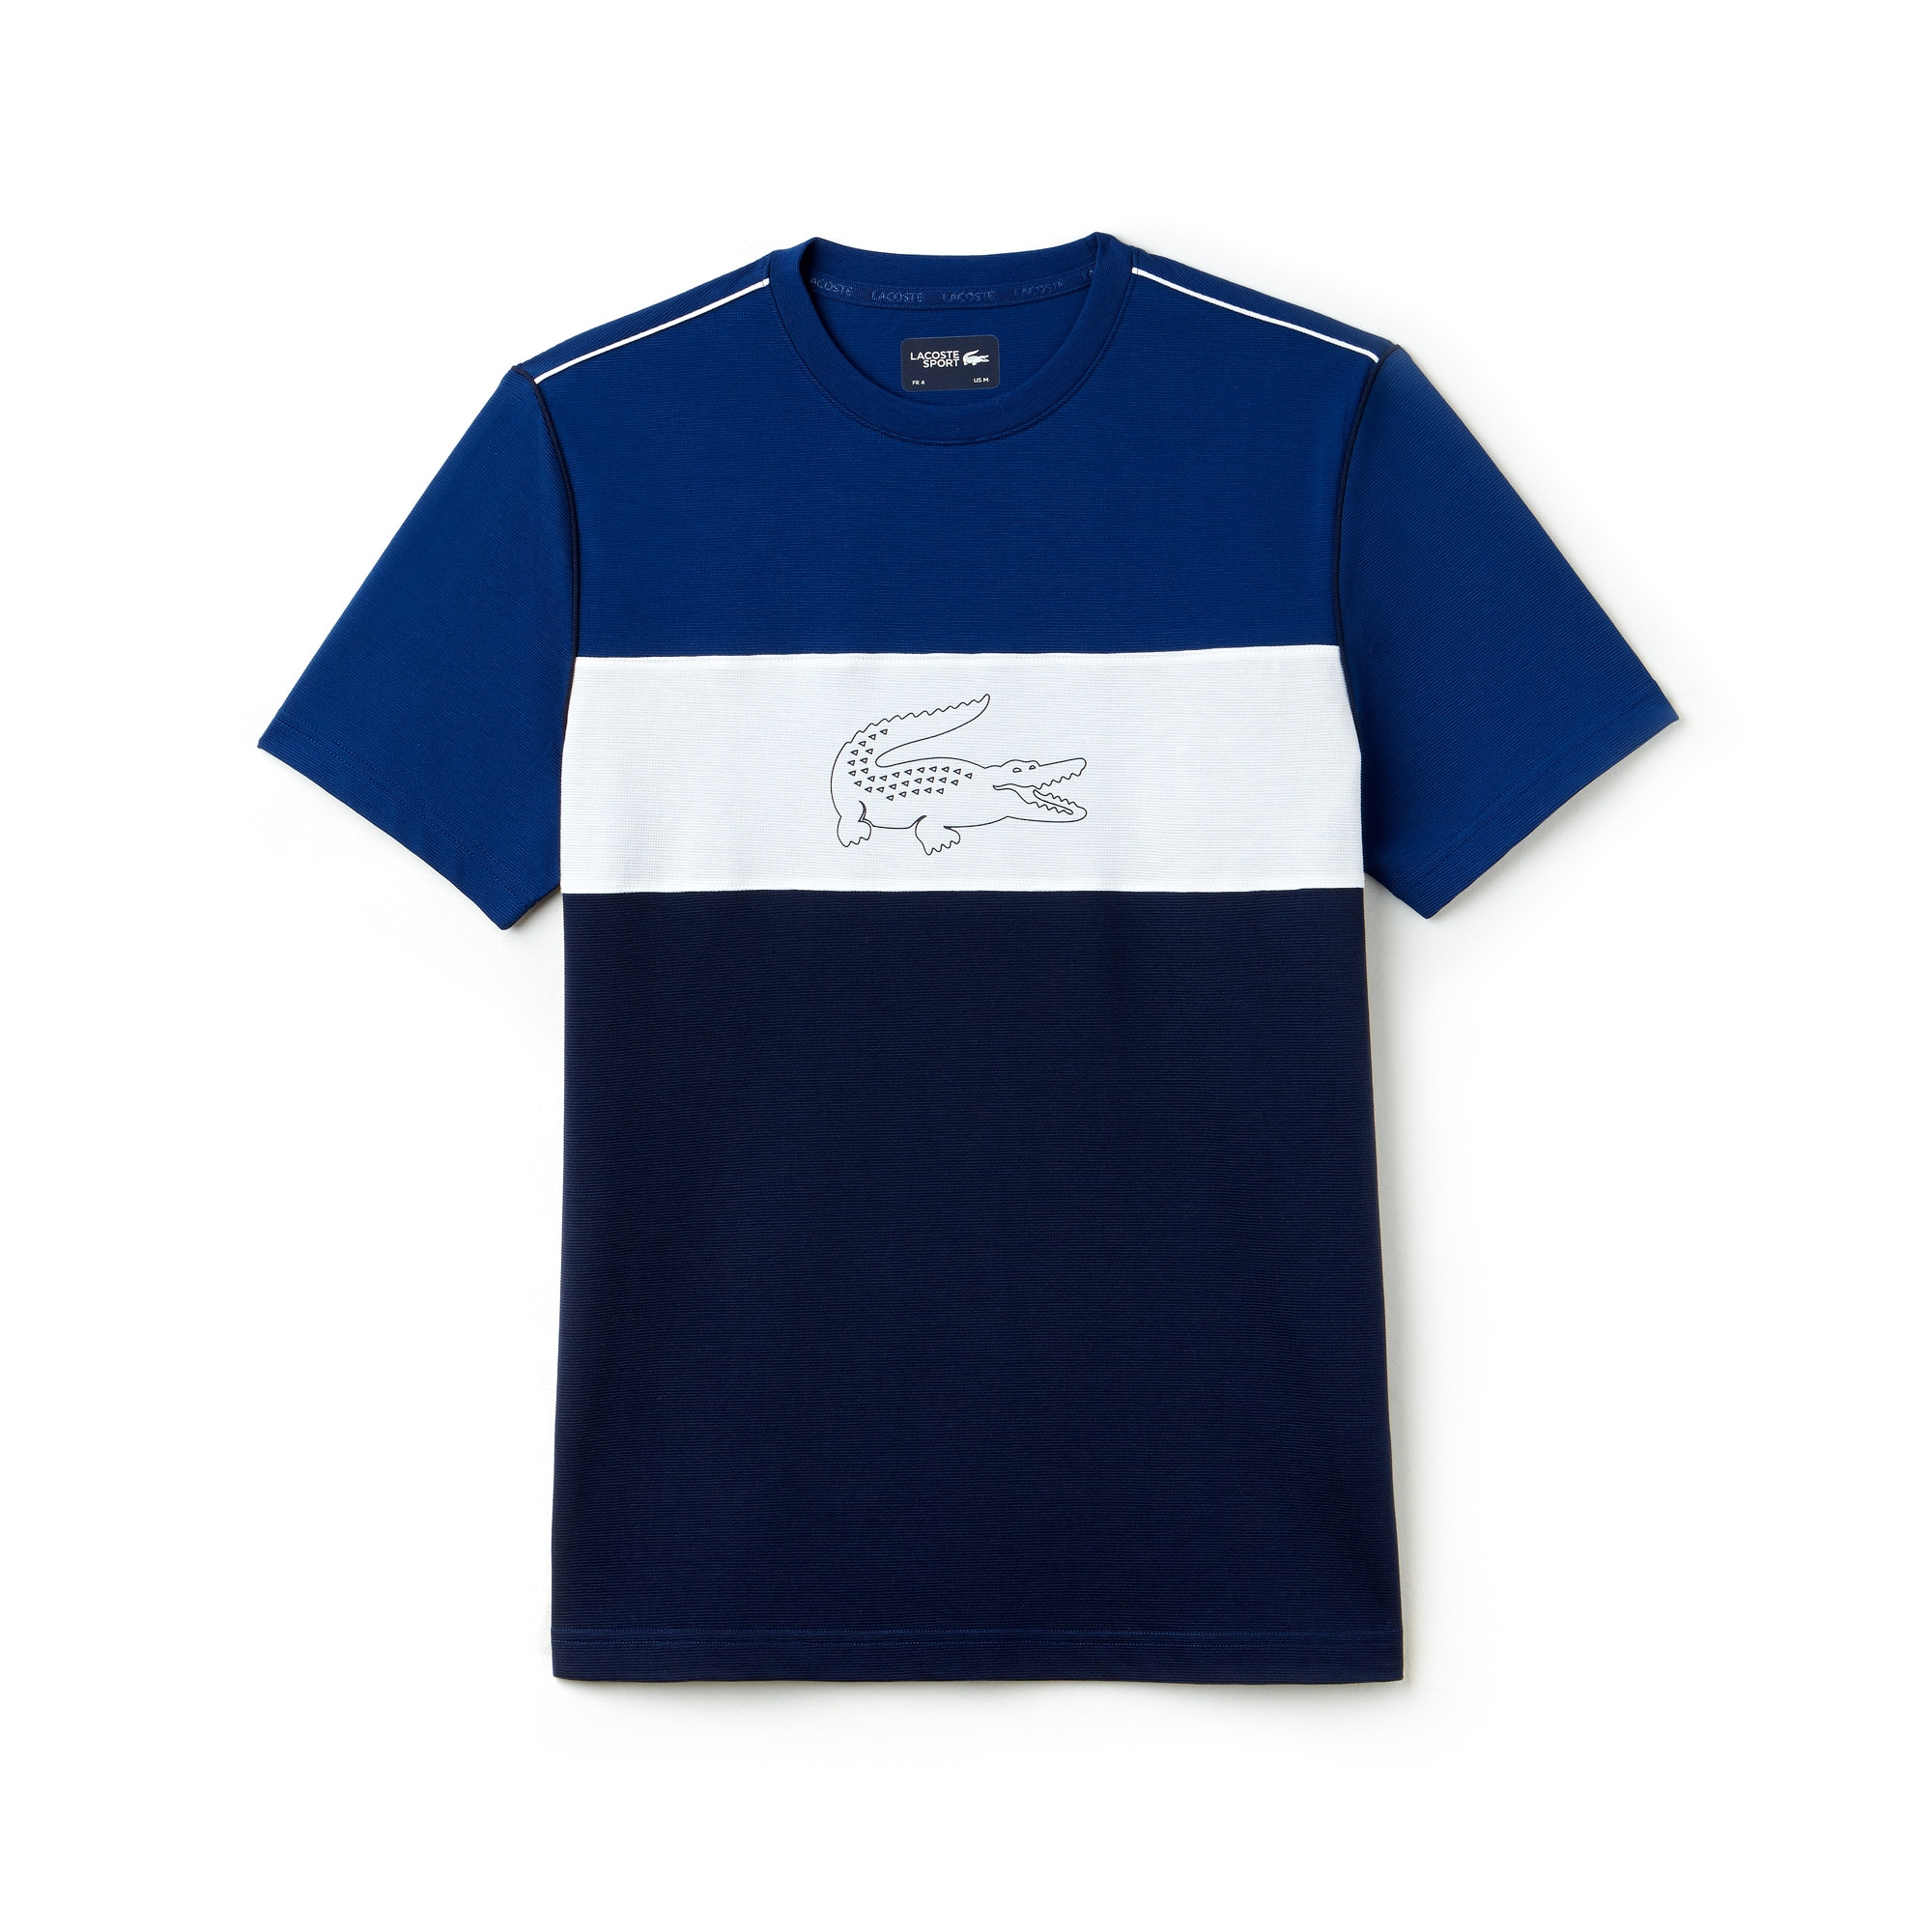 Men's Lacoste SPORT Colorblock Ultra-Light Tech Cotton T-shirt